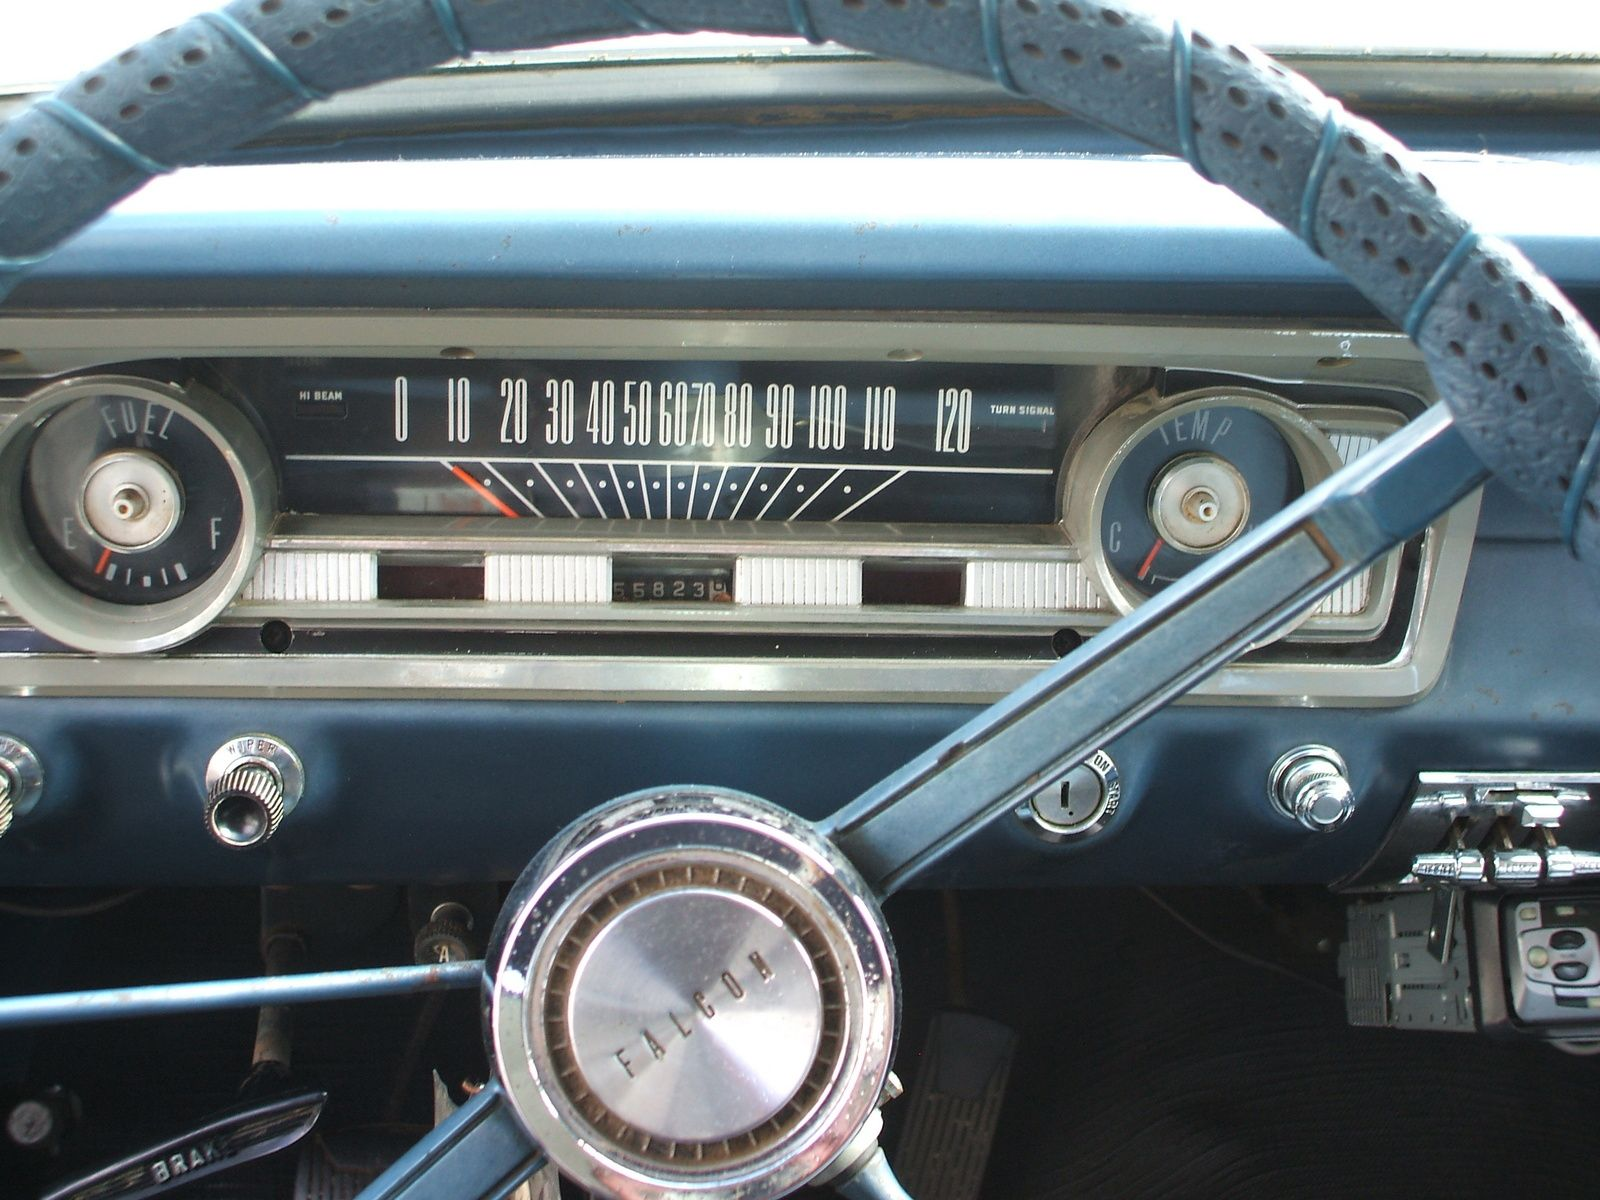 1965 ford falcon for sale on craigslist 2013 ford falcon interior sprint huge collection of